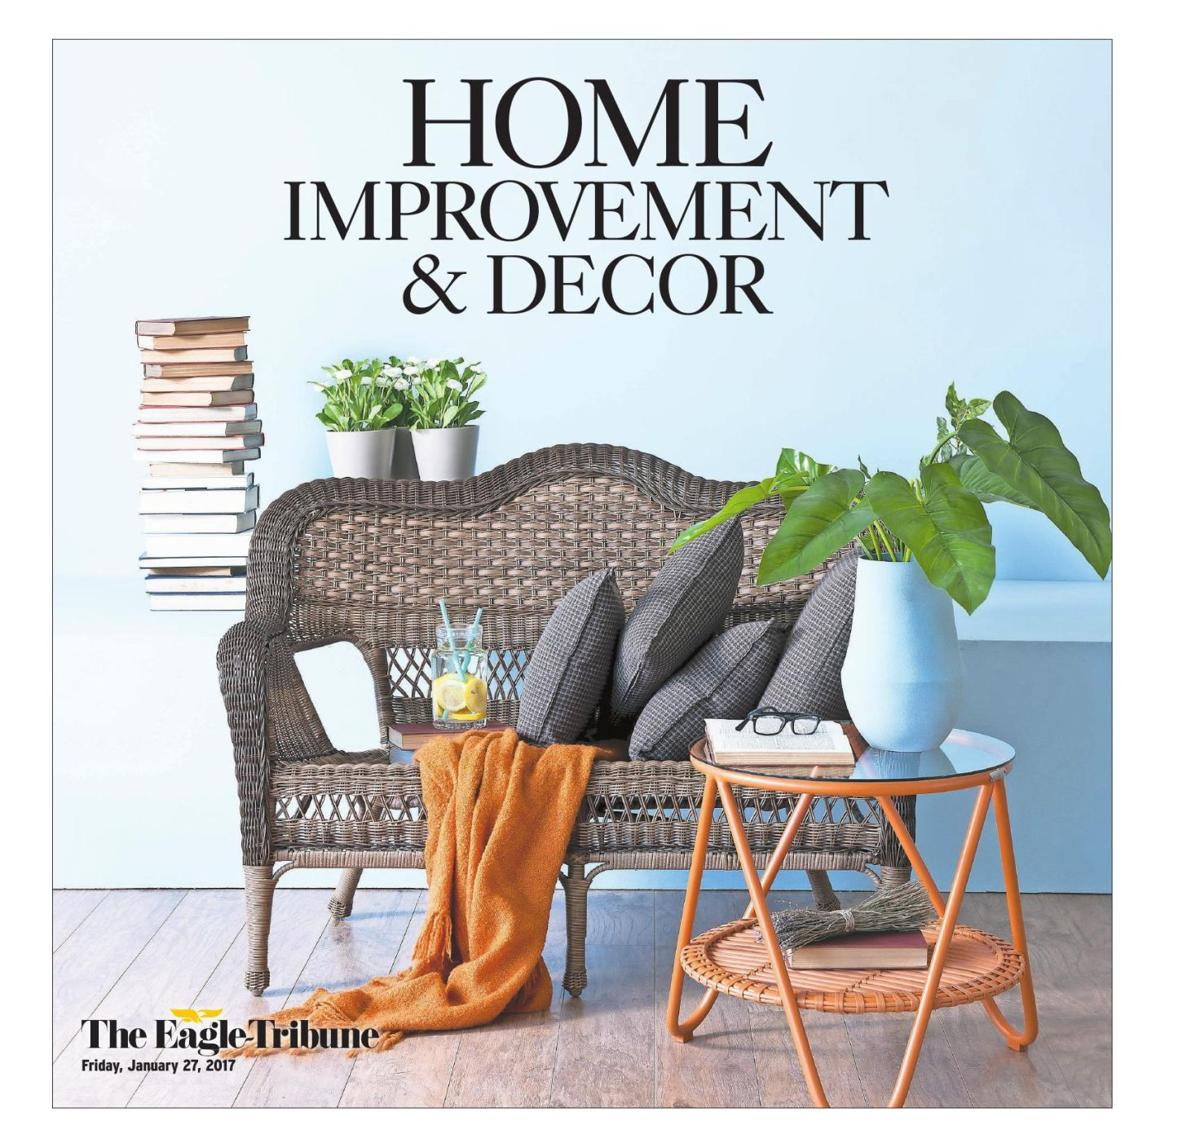 home improvement decor special sections eagletribune com download pdf home improvement decor